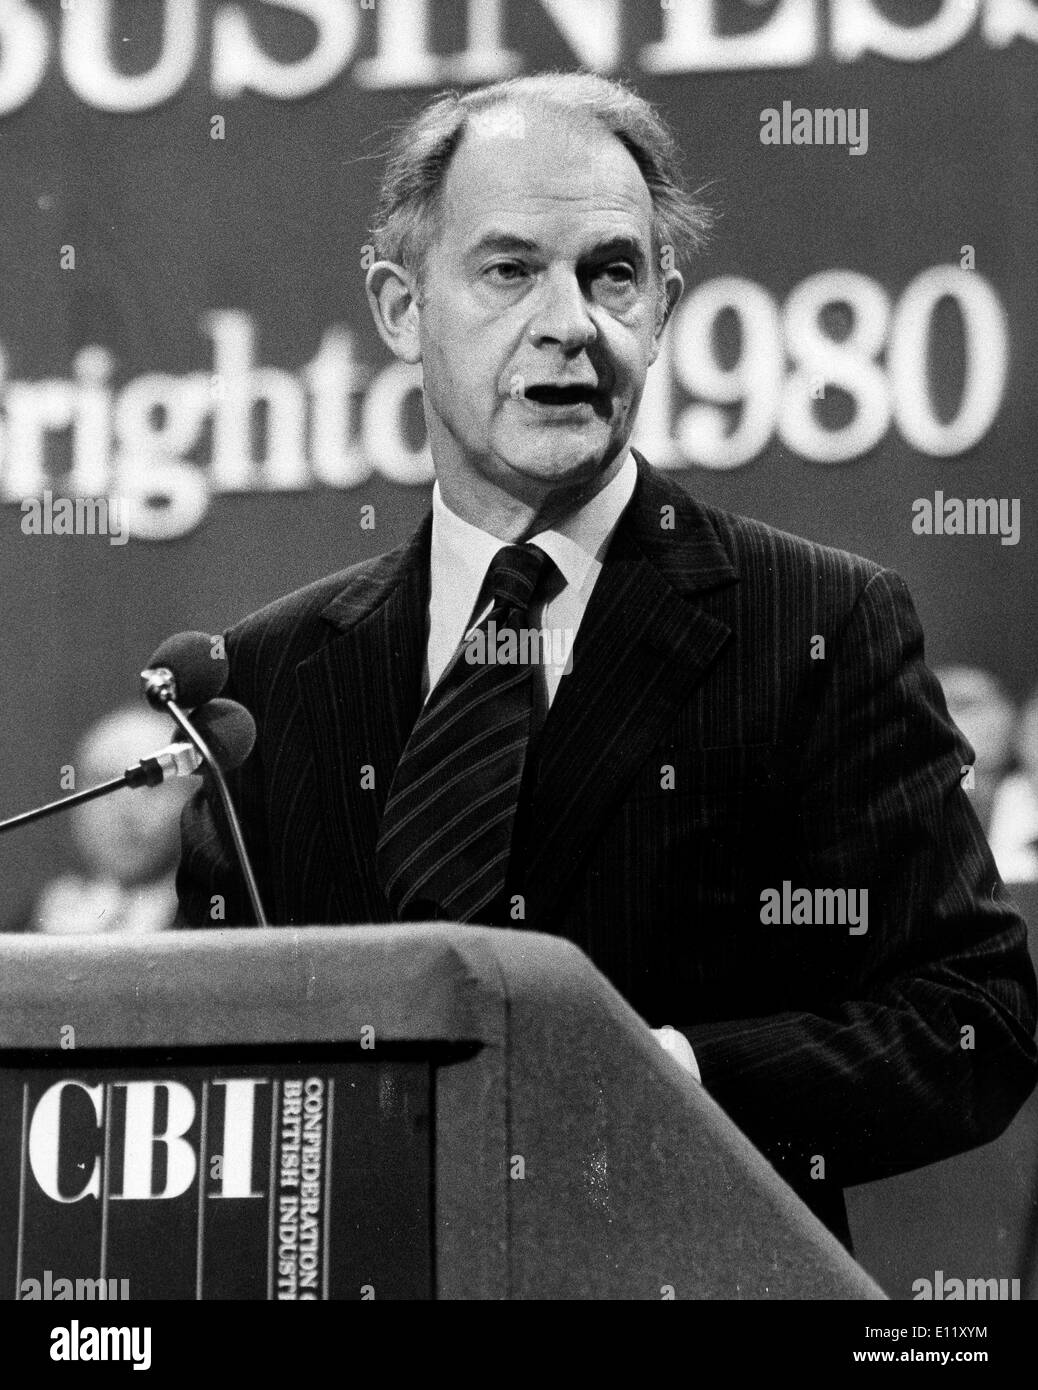 Nov 12, 1980; London, UK; Sir TERENCE BECKETT Director General of the British Industry at the CBI Conference - Stock Image